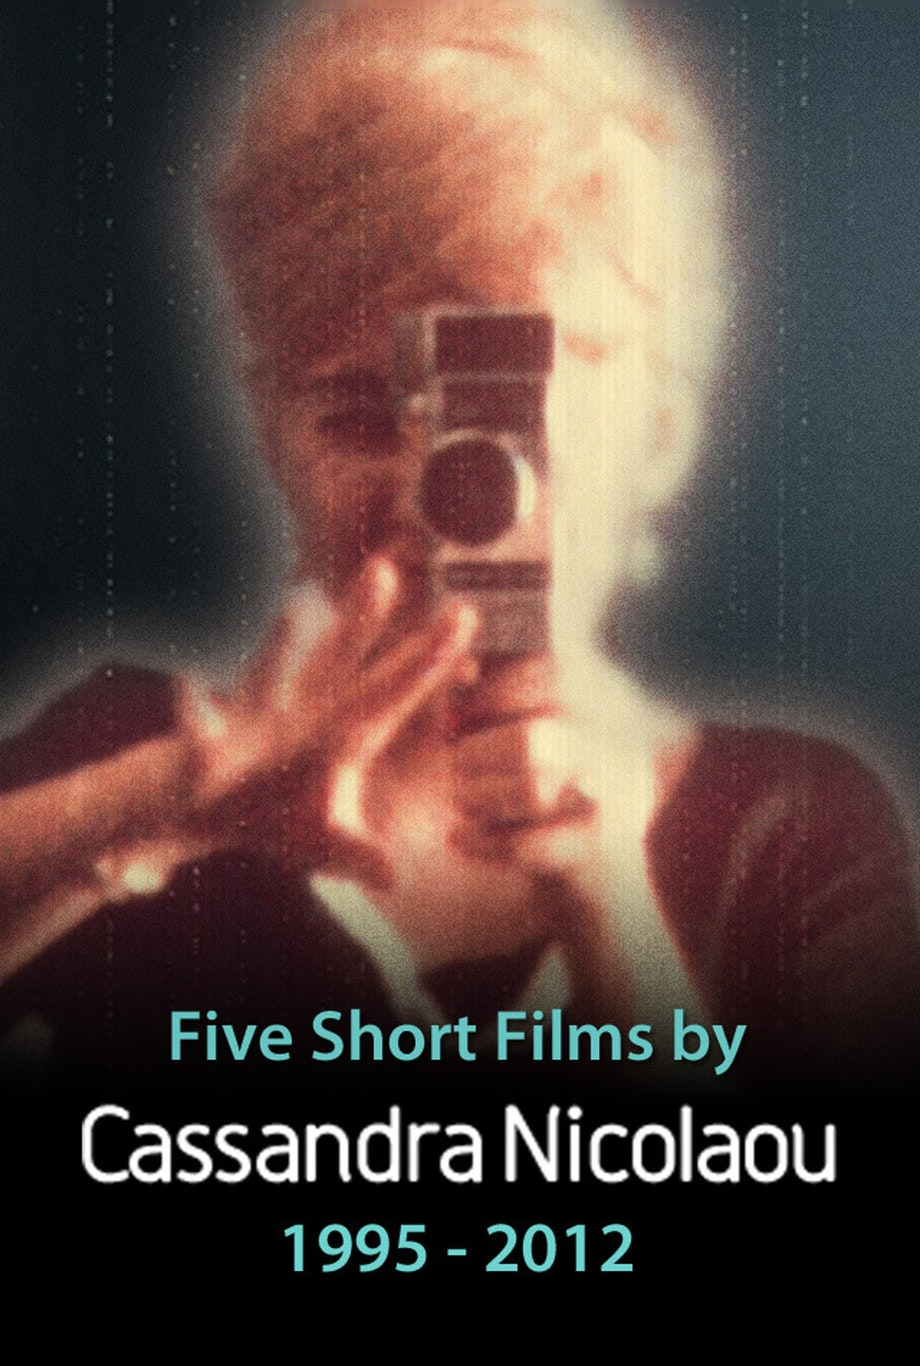 Five Short Films by Cassandra Nicolaou